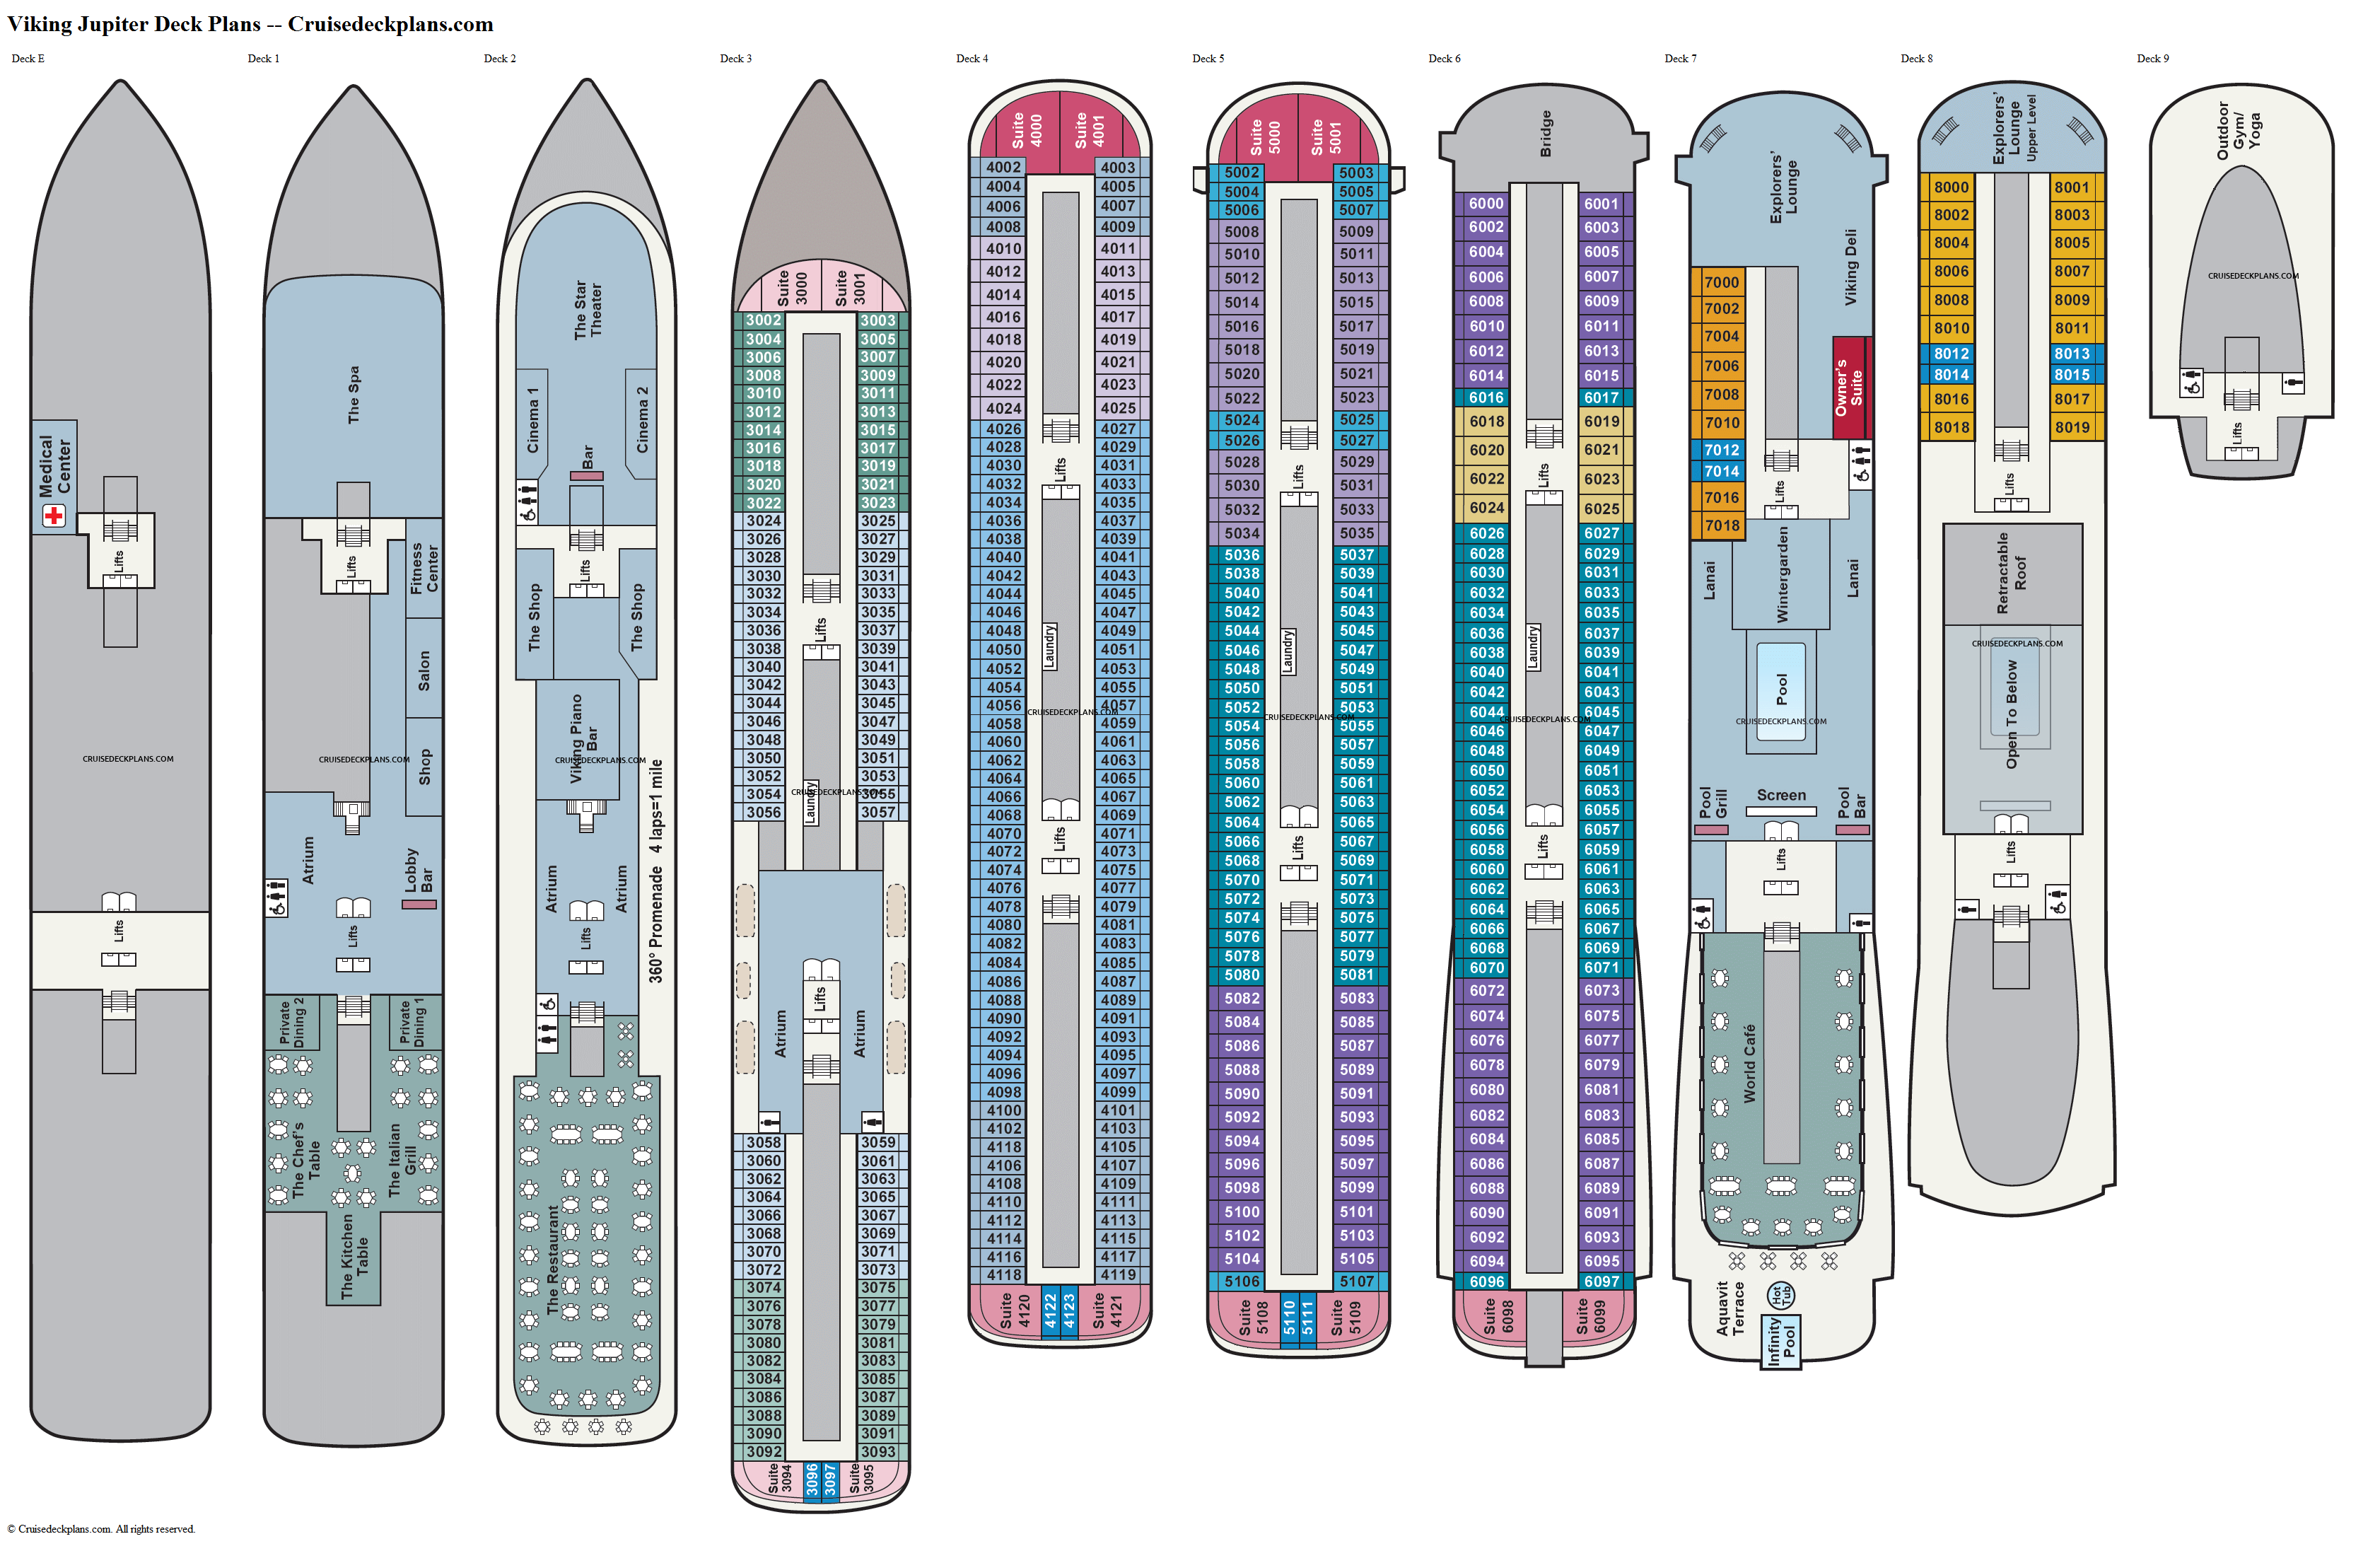 Viking Jupiter deck plans image